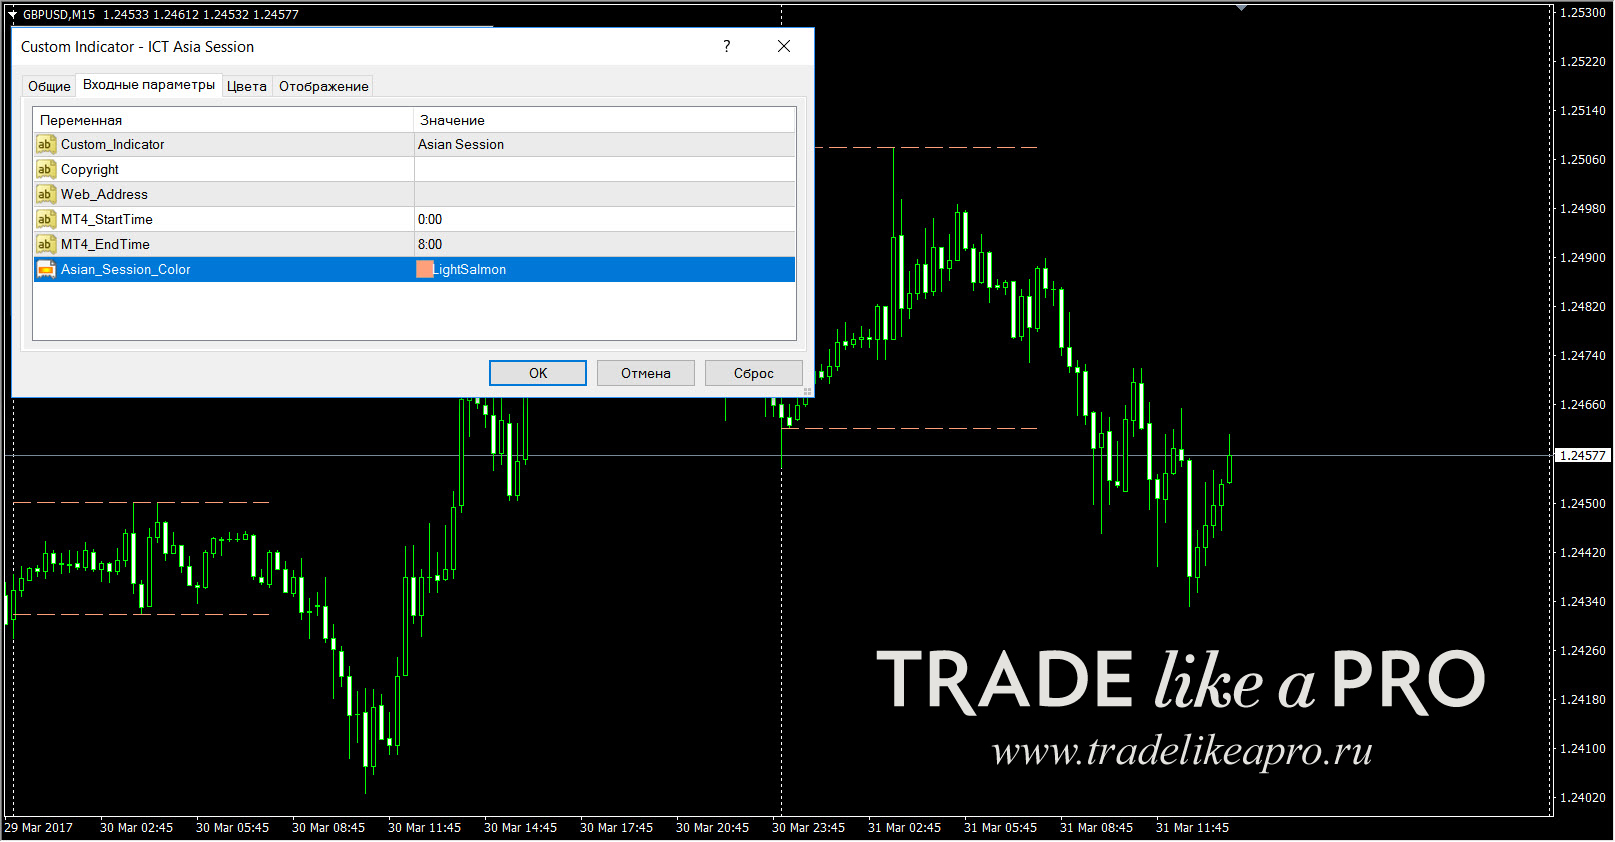 Forex session times pst